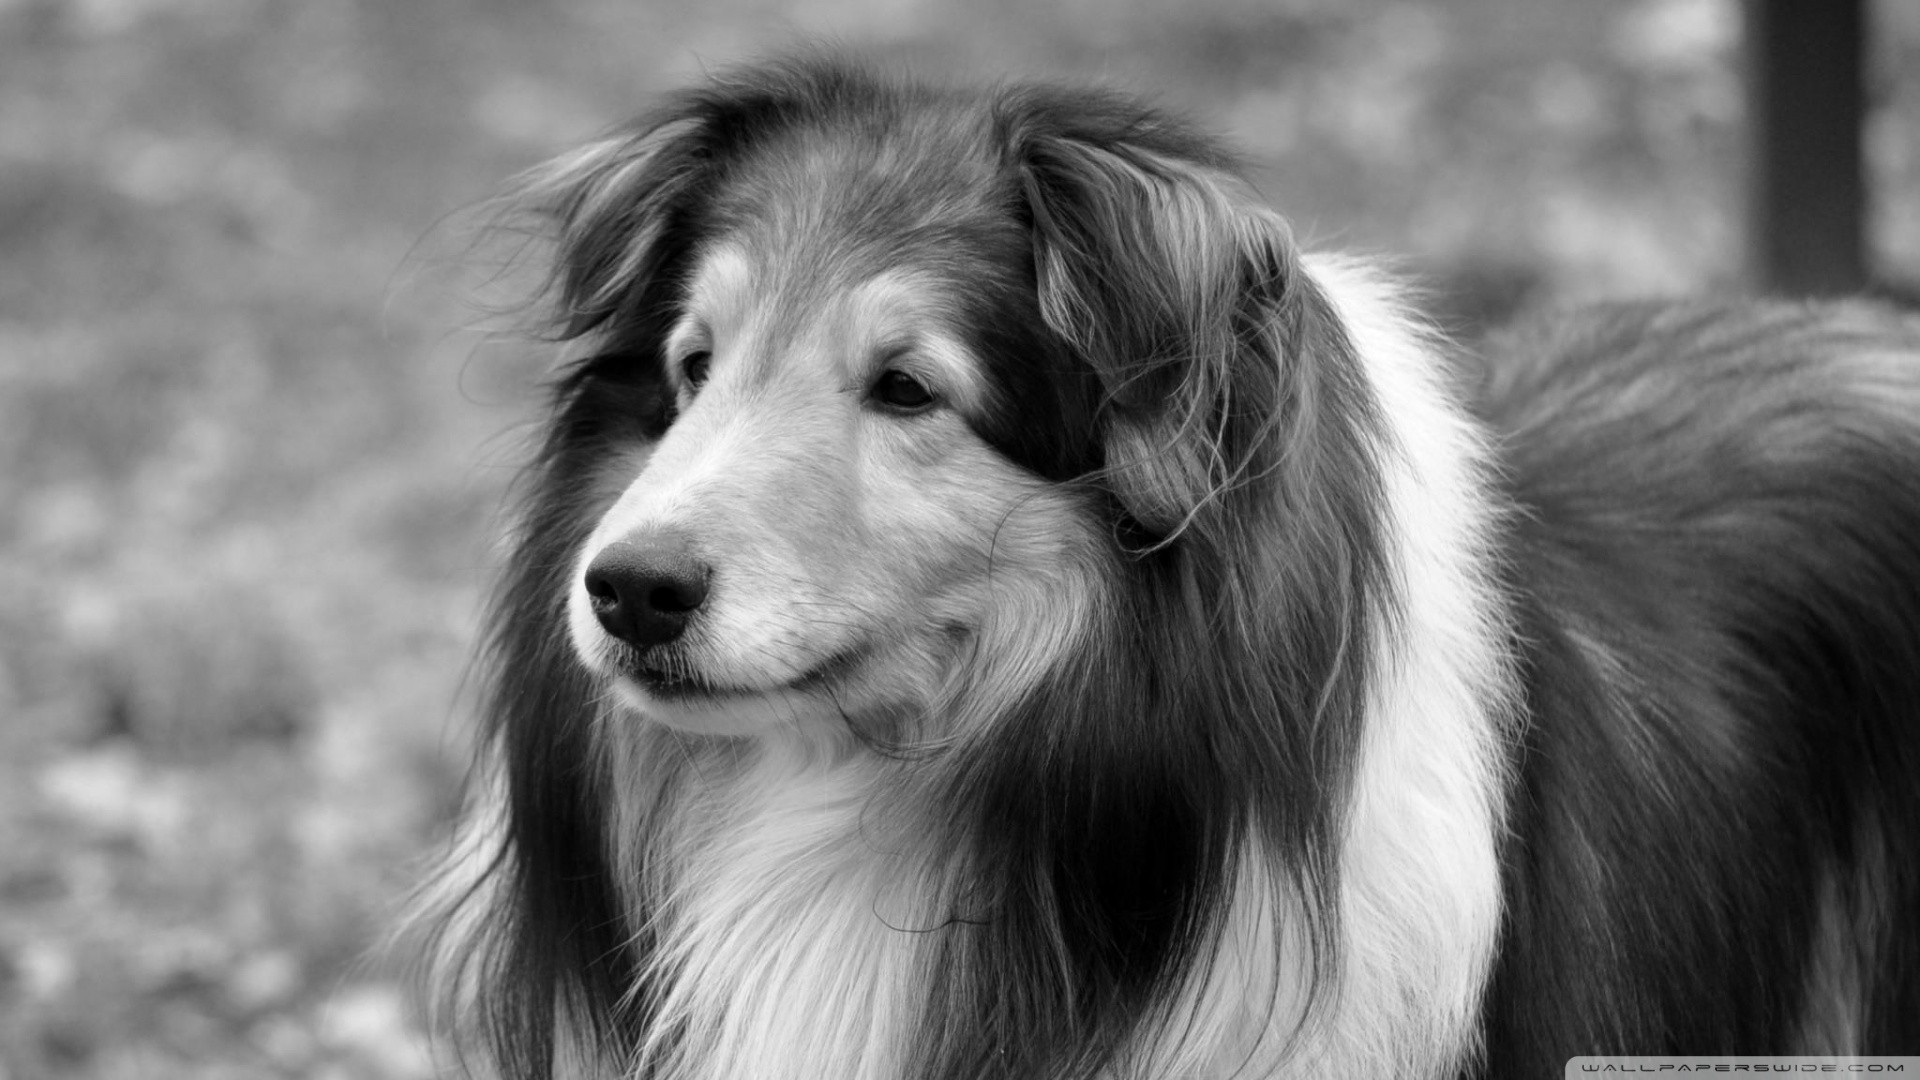 Black And White Dog Wallpapers HD - Scerbos com